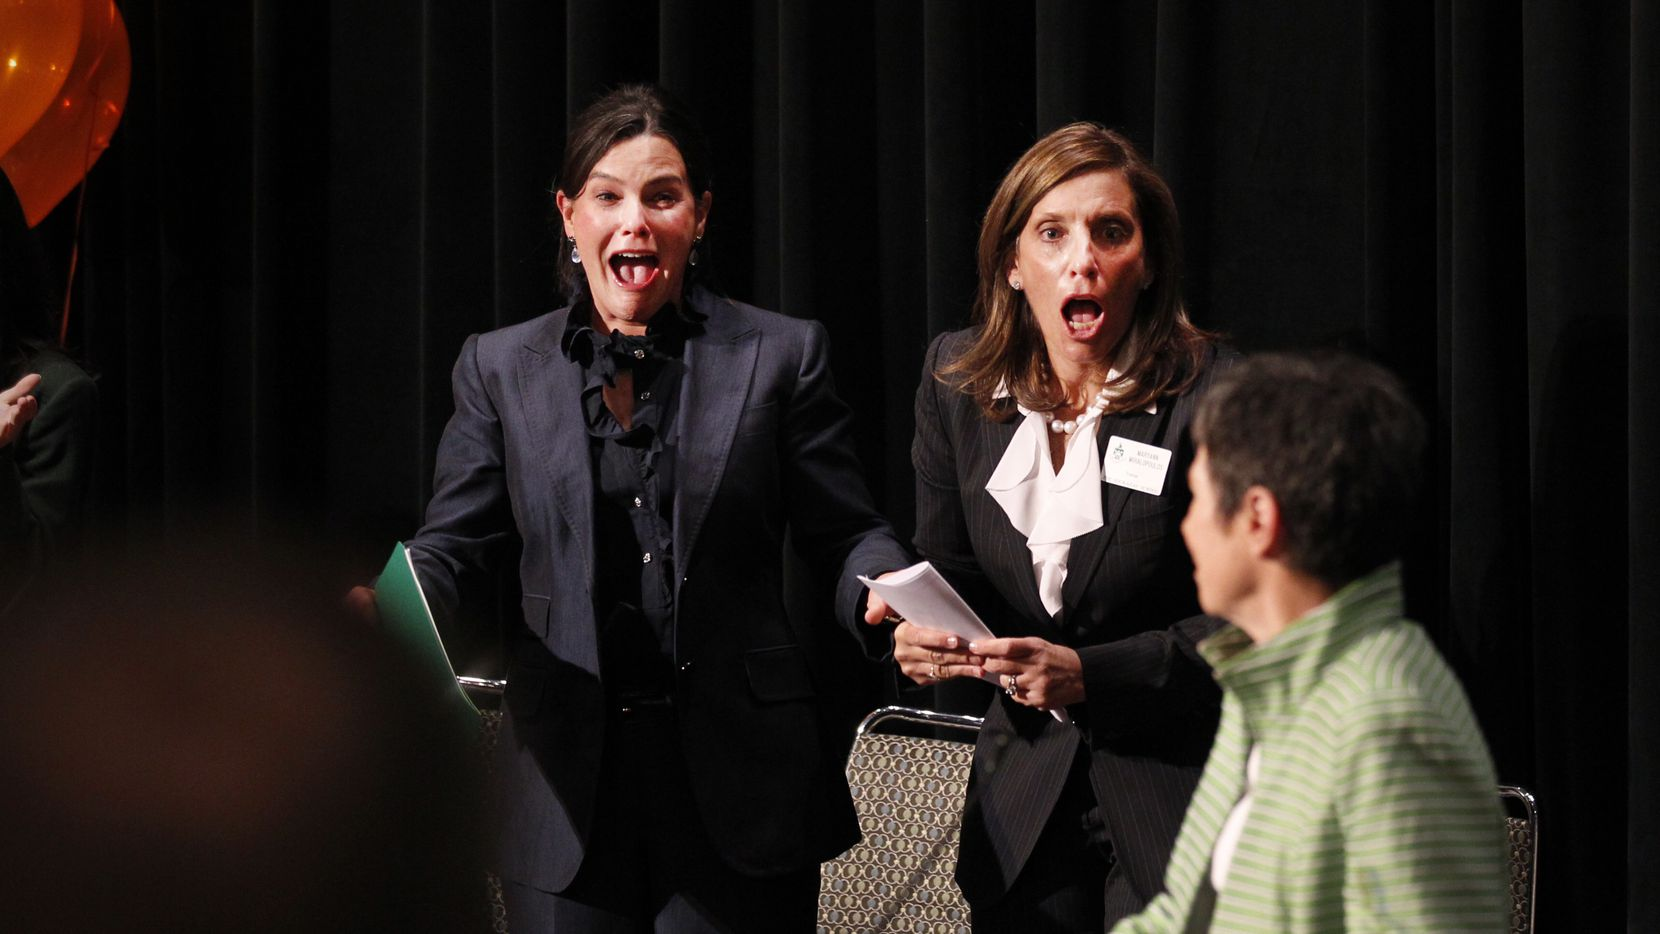 From left: Jeanne Whitman Bobbitt, headmistress of The Hockaday School, and Maryann Mihalopoulos, centennial campaign chair of the school, reacted as Lyda Hill announced that she was doubling her donation to the school from $10 million to $20 million in 2011.